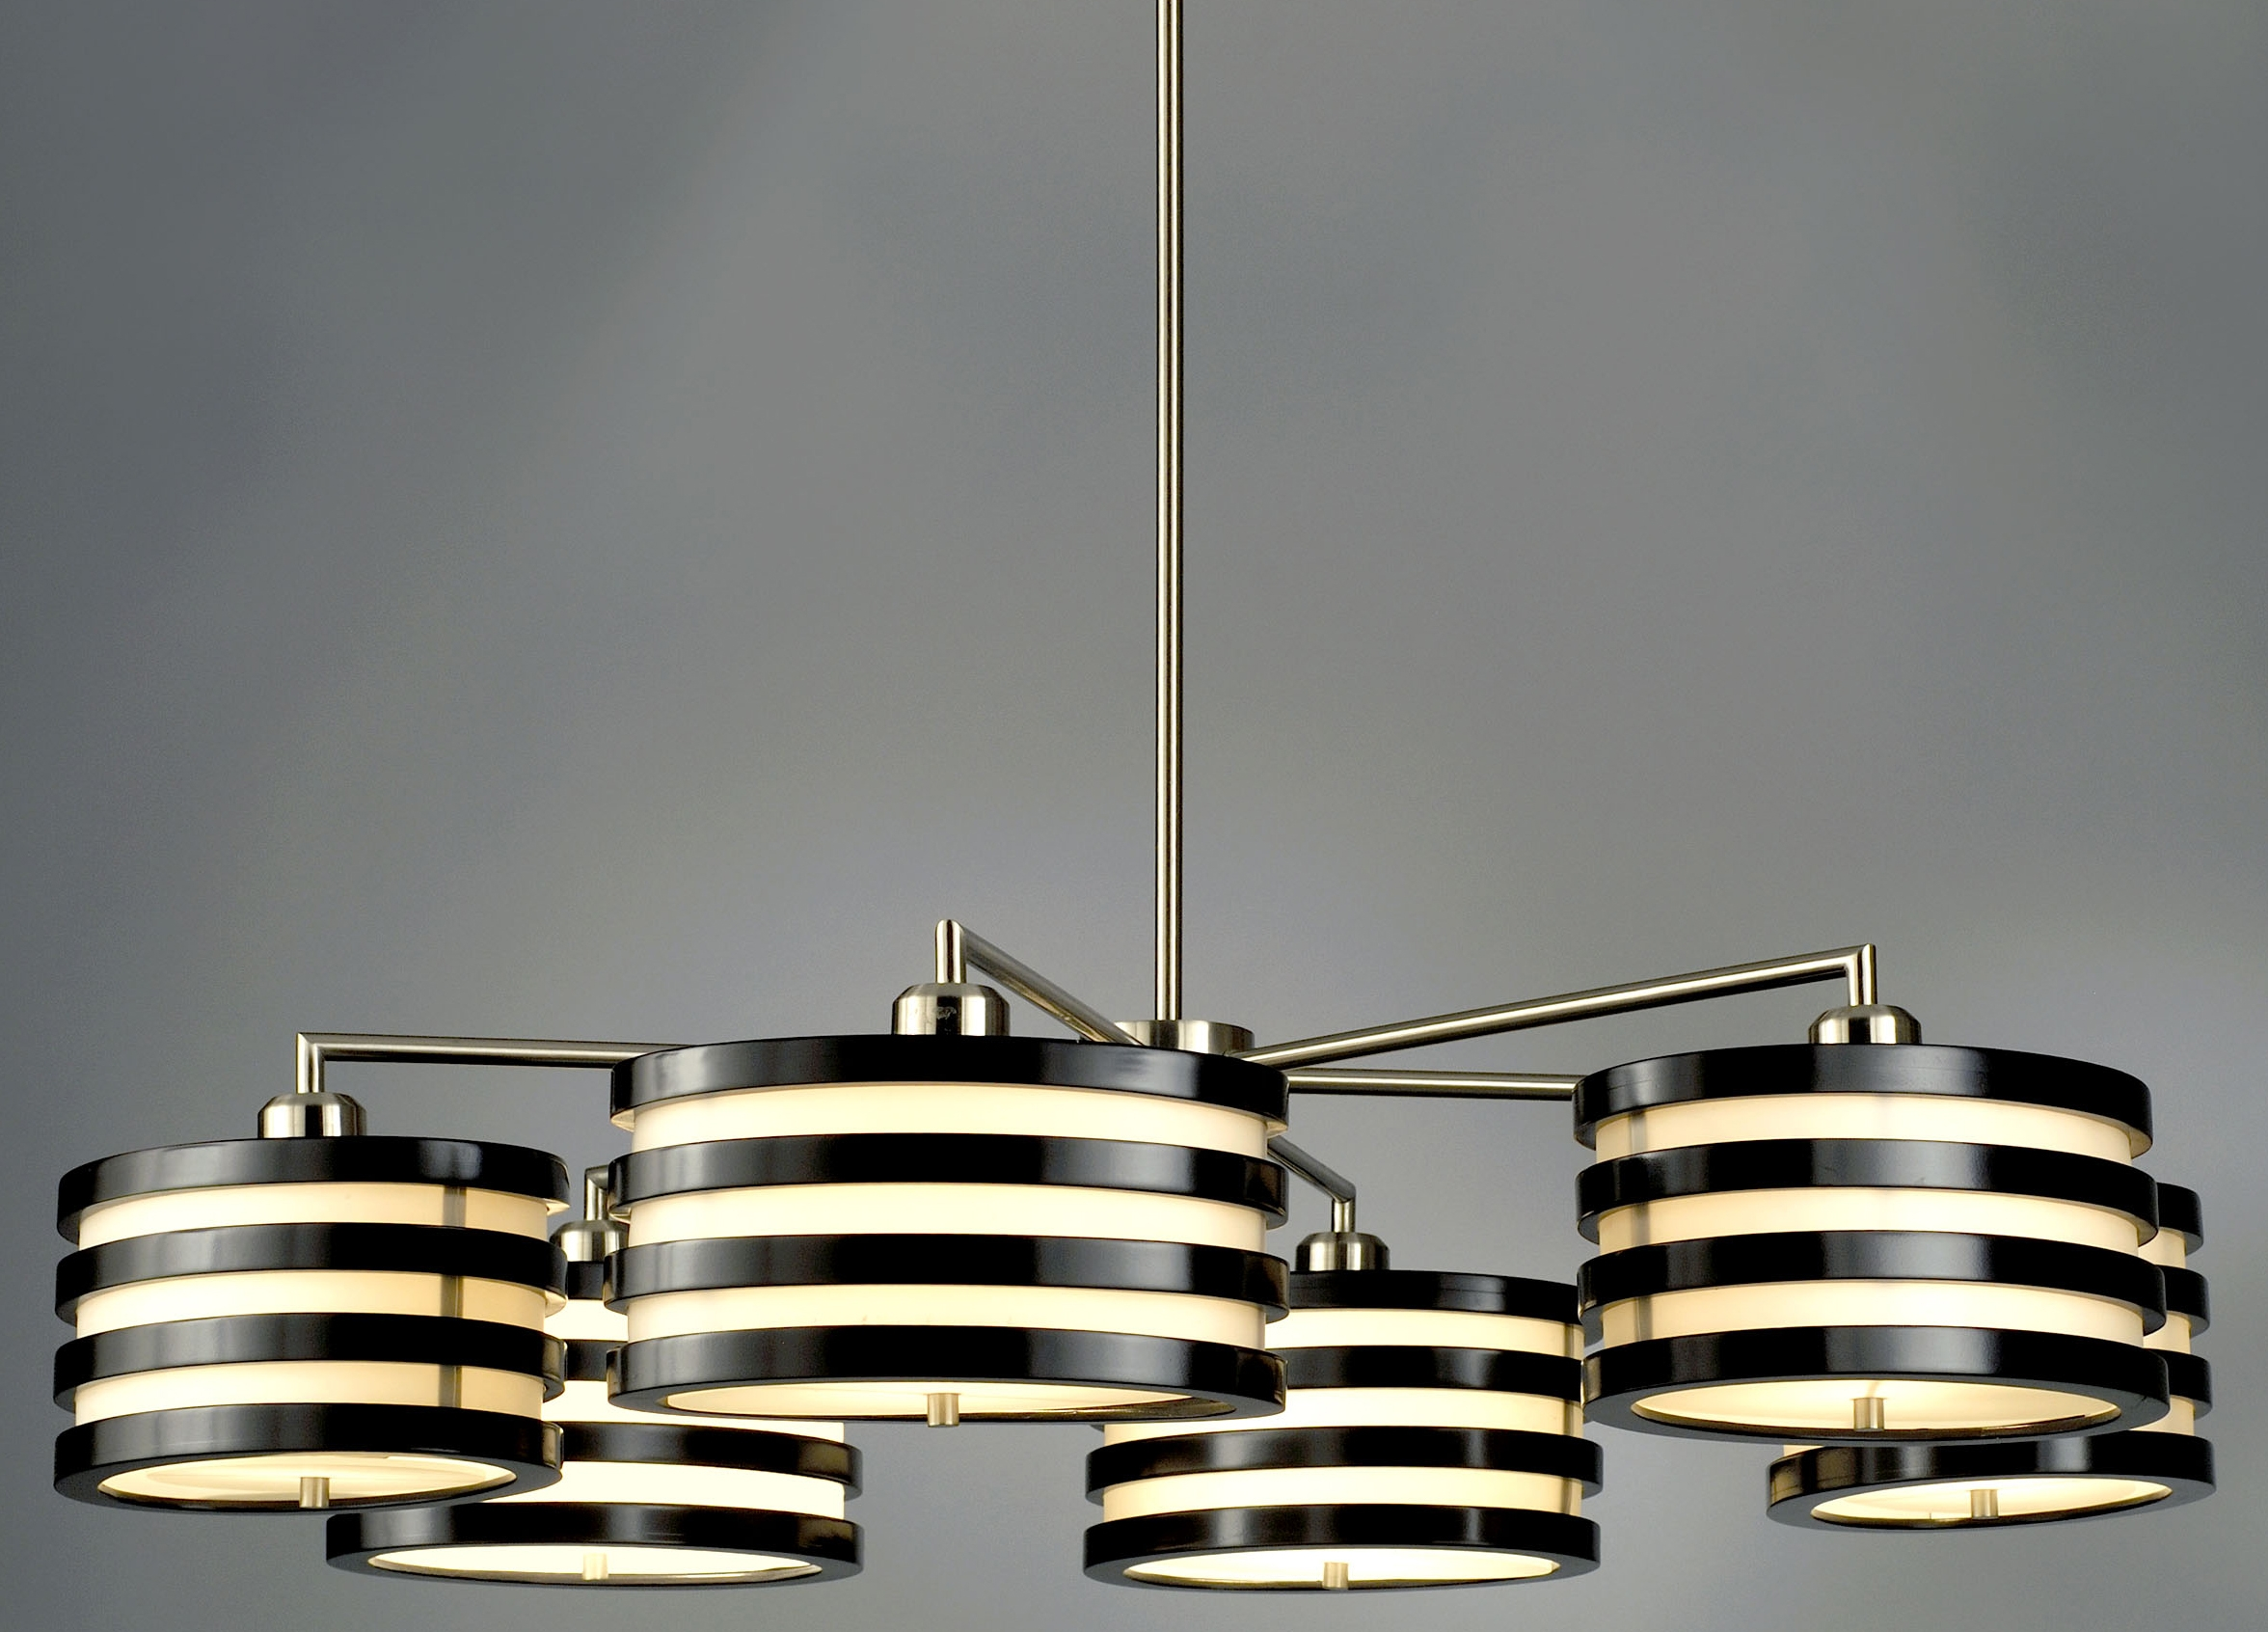 Modern Chandelier Light Fixtures Alexsullivanfund With Contemporary Modern Chandelier (Image 14 of 15)